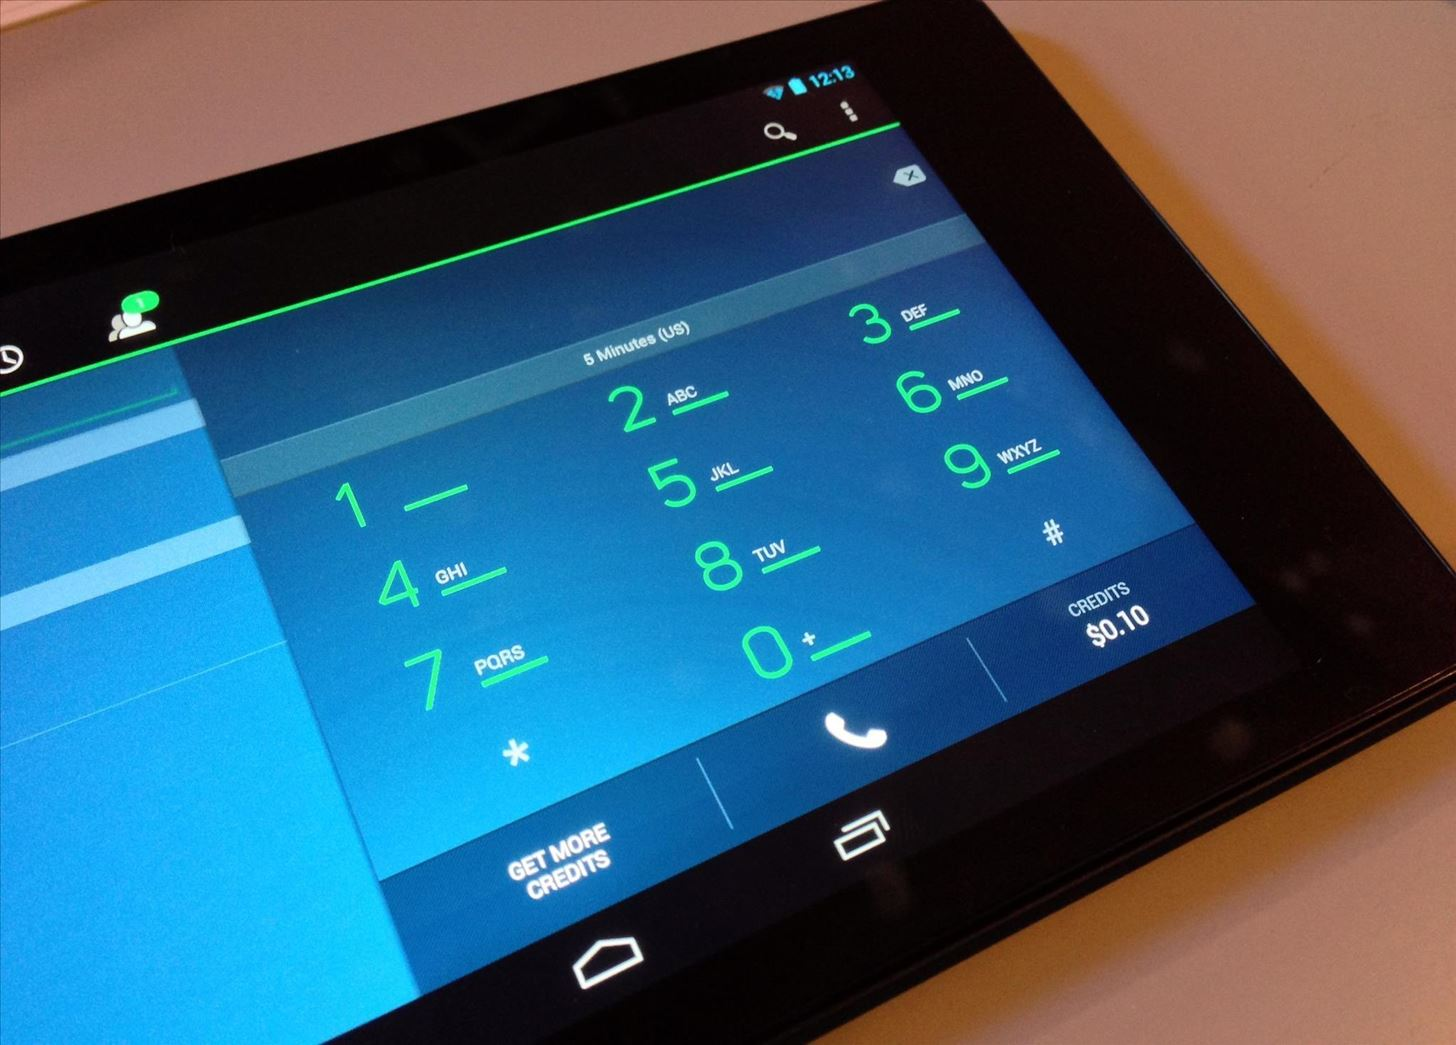 How to Turn Your Nexus 7 Tablet into a Phone for Free Calls & Text Messages